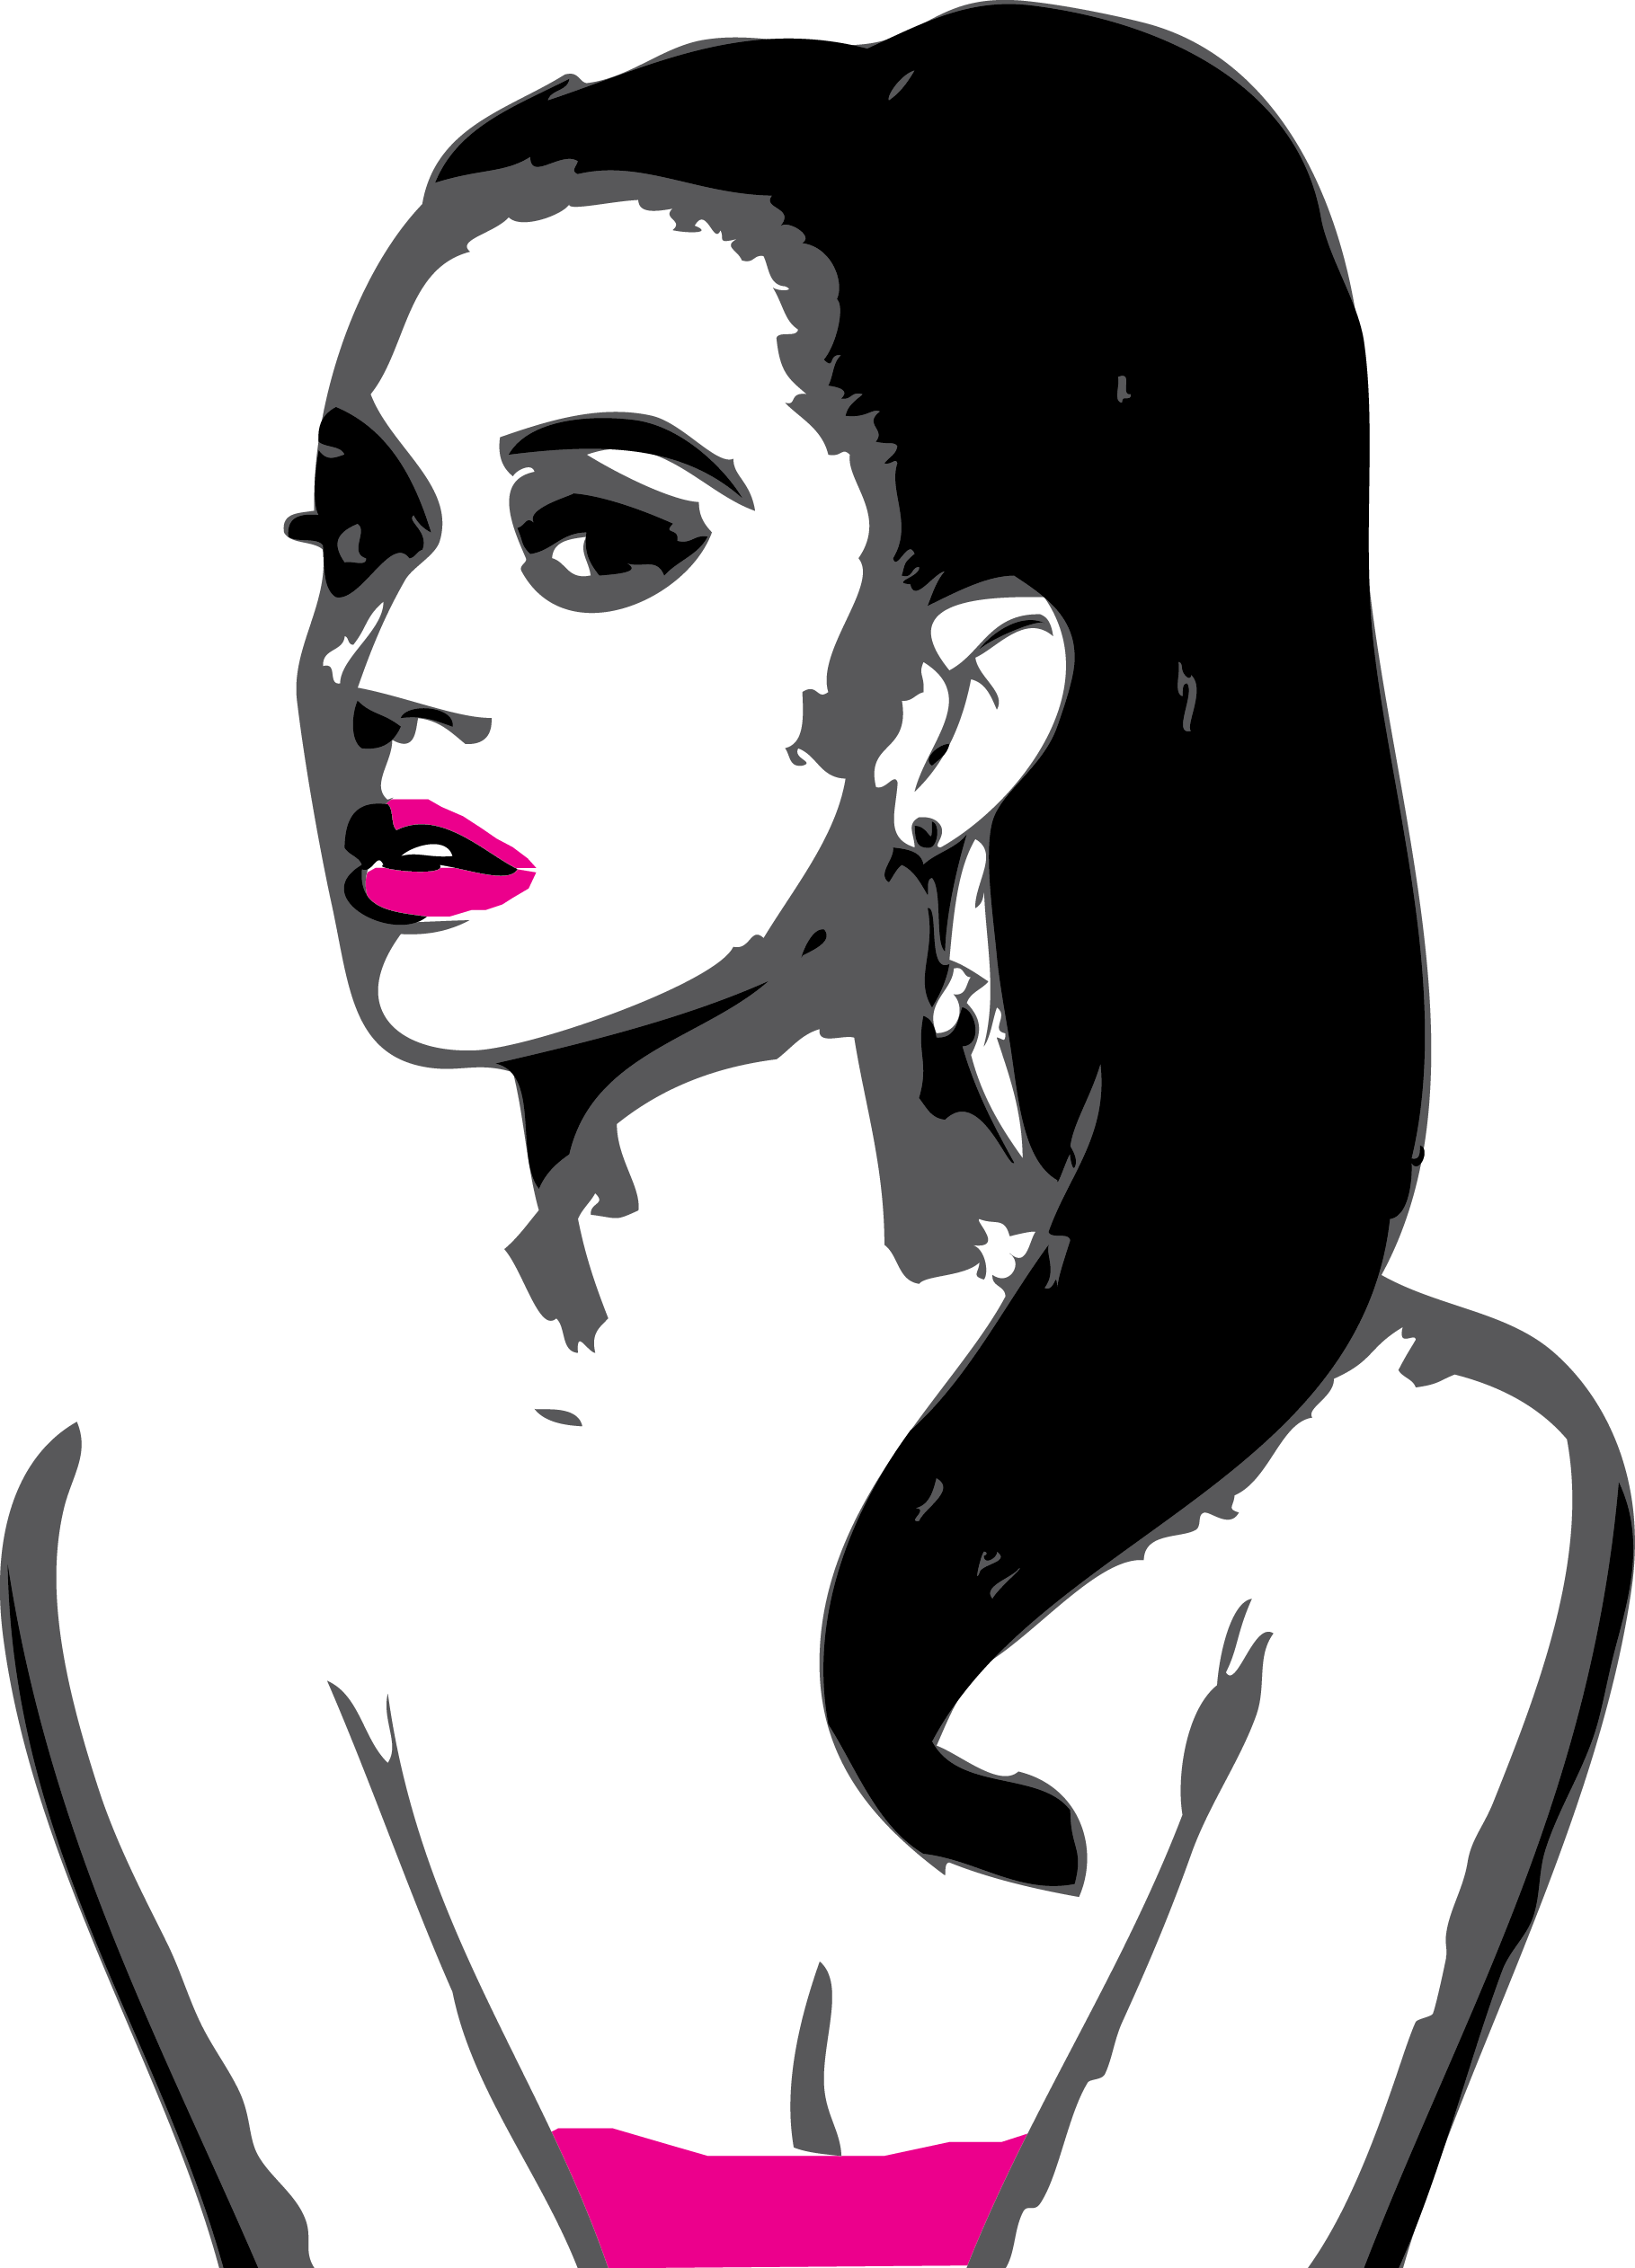 Whisper clipart spy woman. Katy perry transparent background